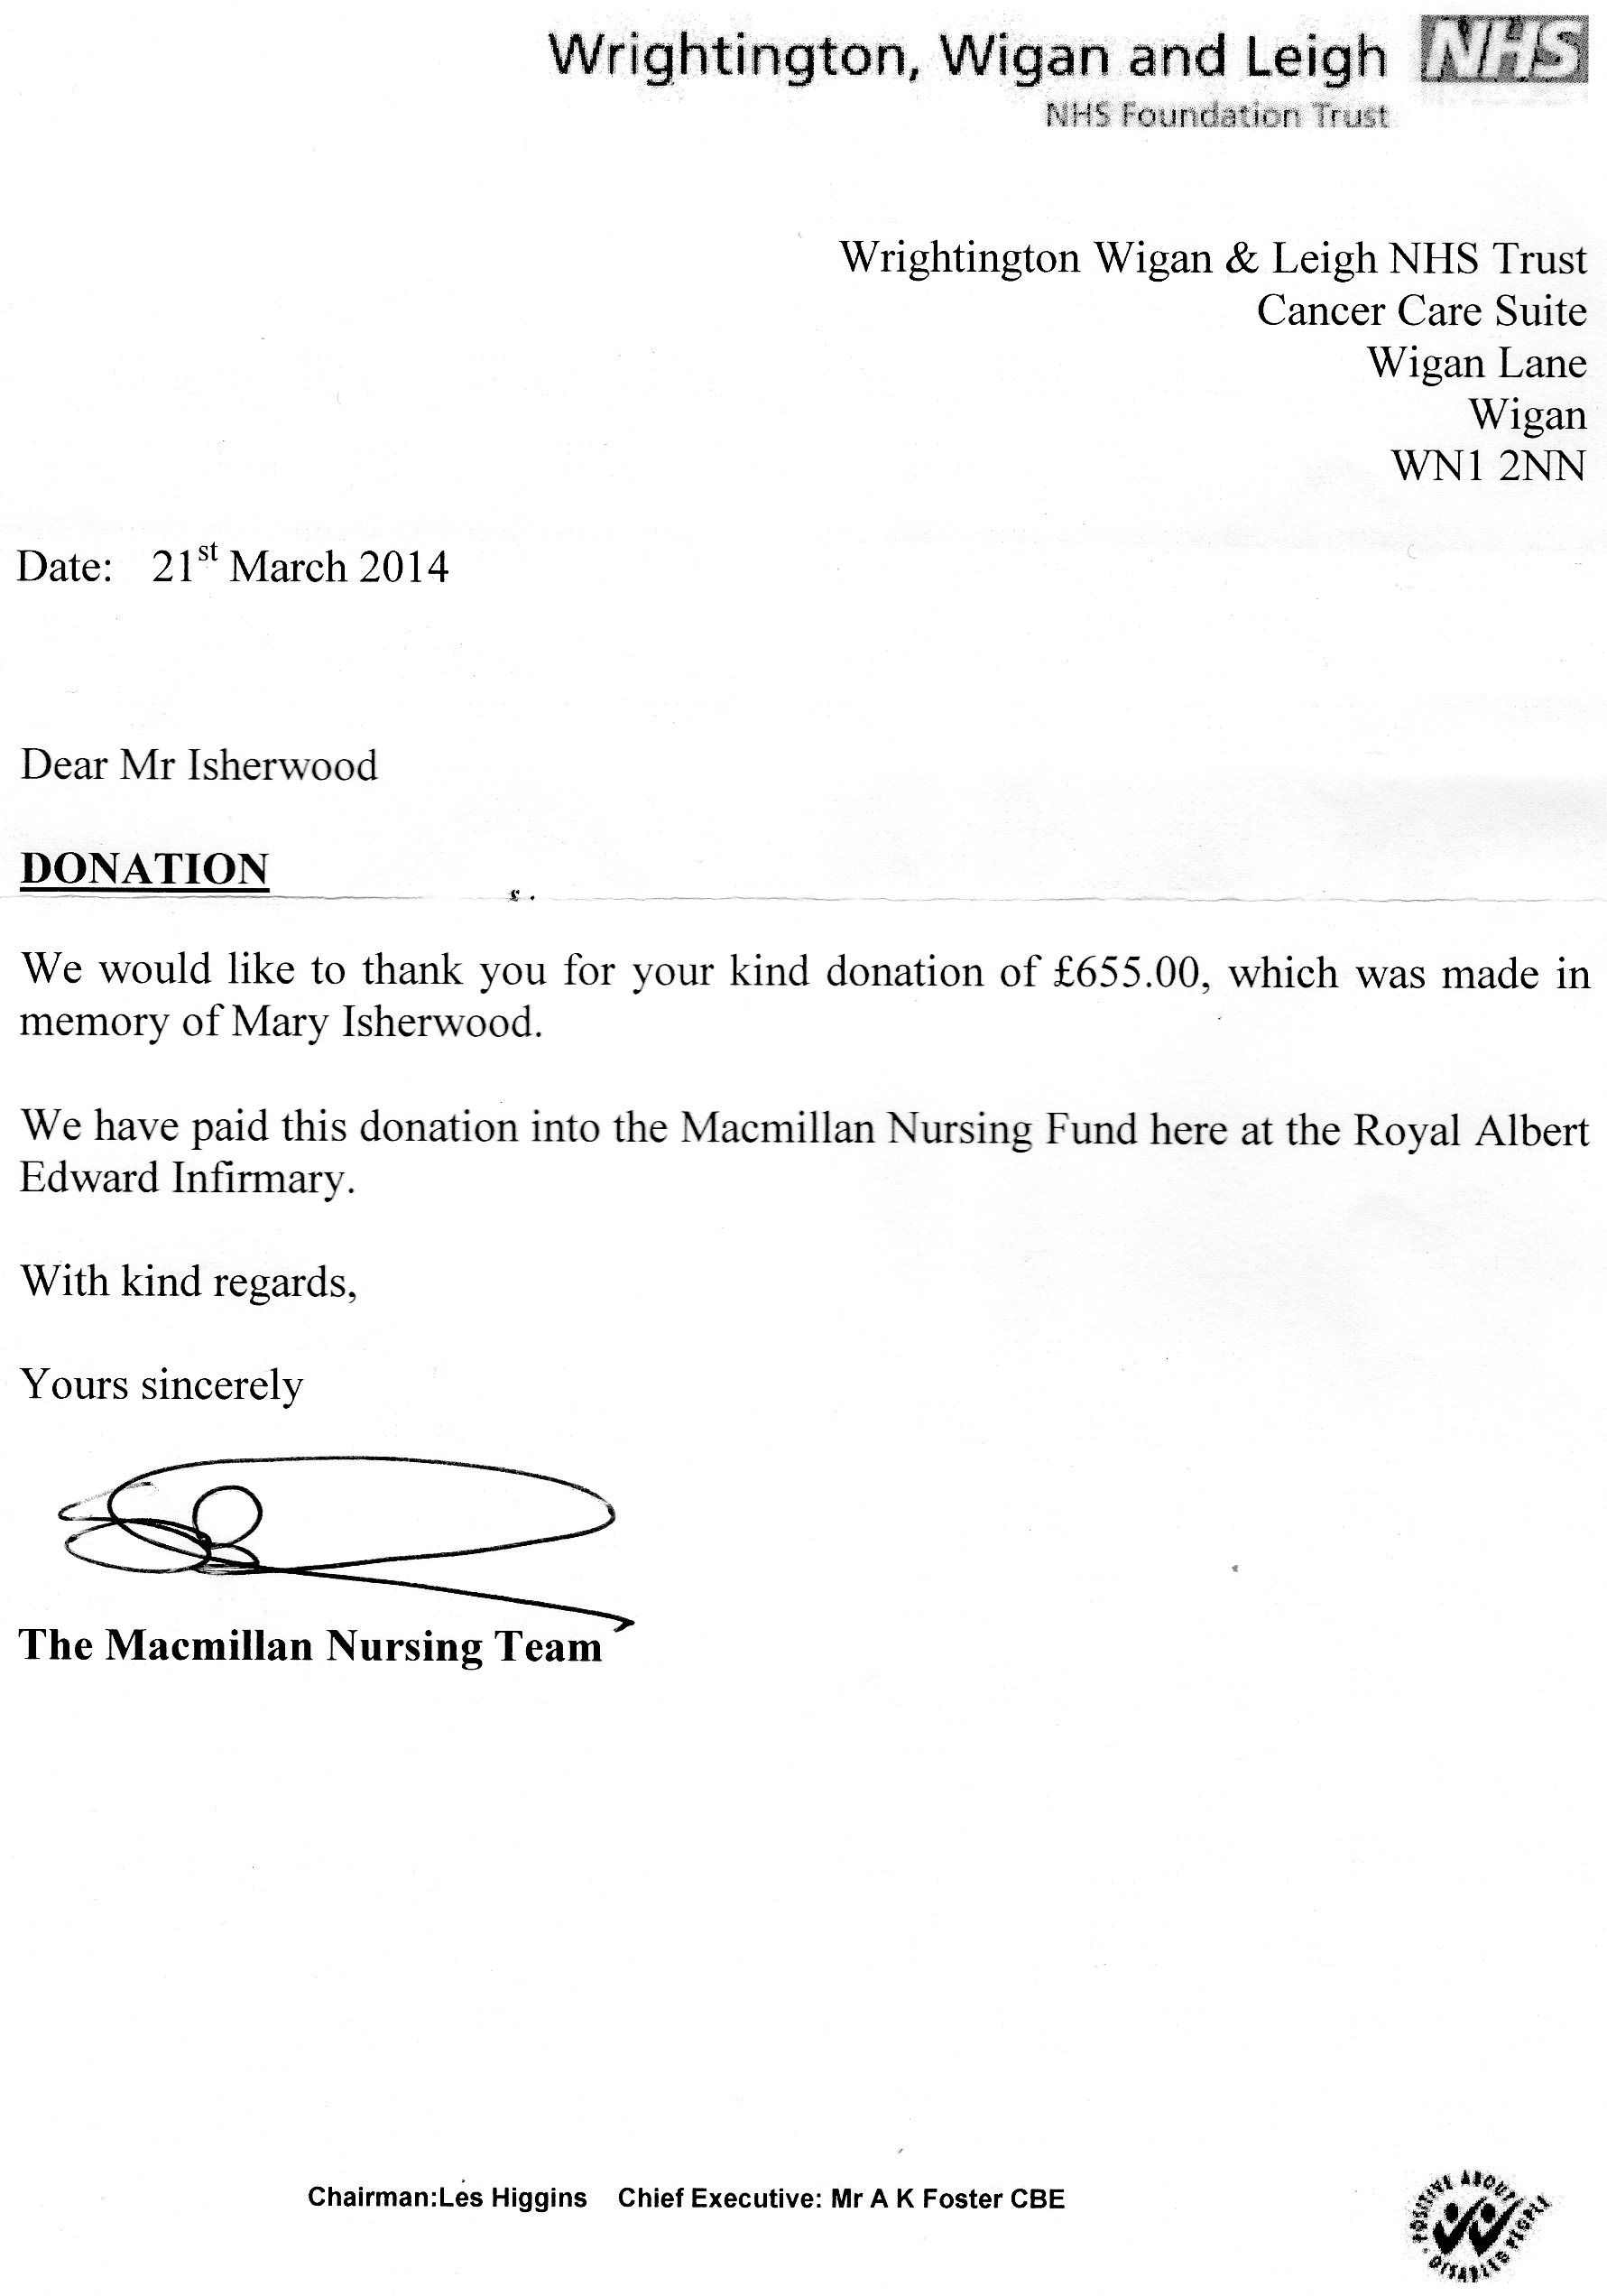 sample donation letter in memory of someone